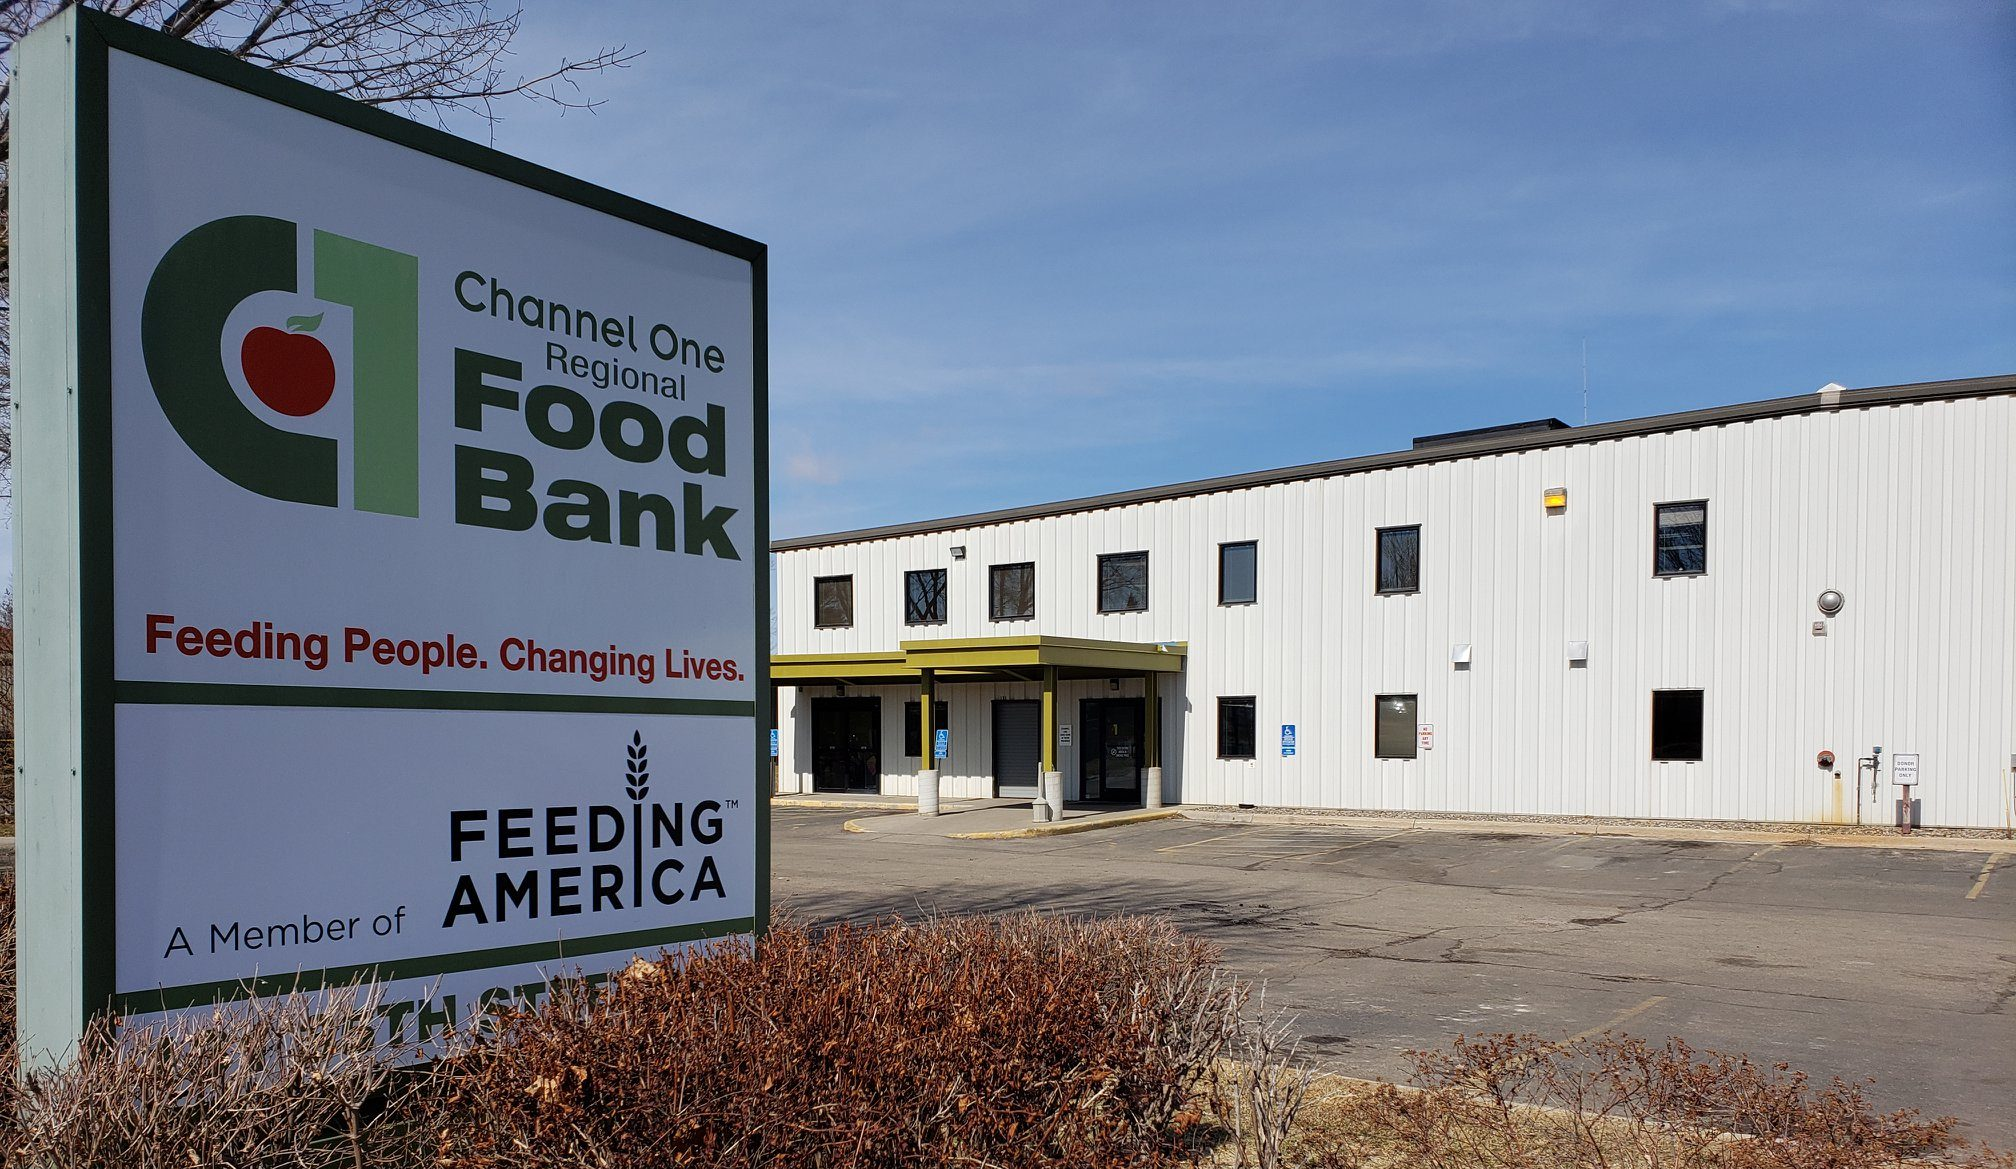 Channel One Regional Food Bank: providing hope to less-resourced areas